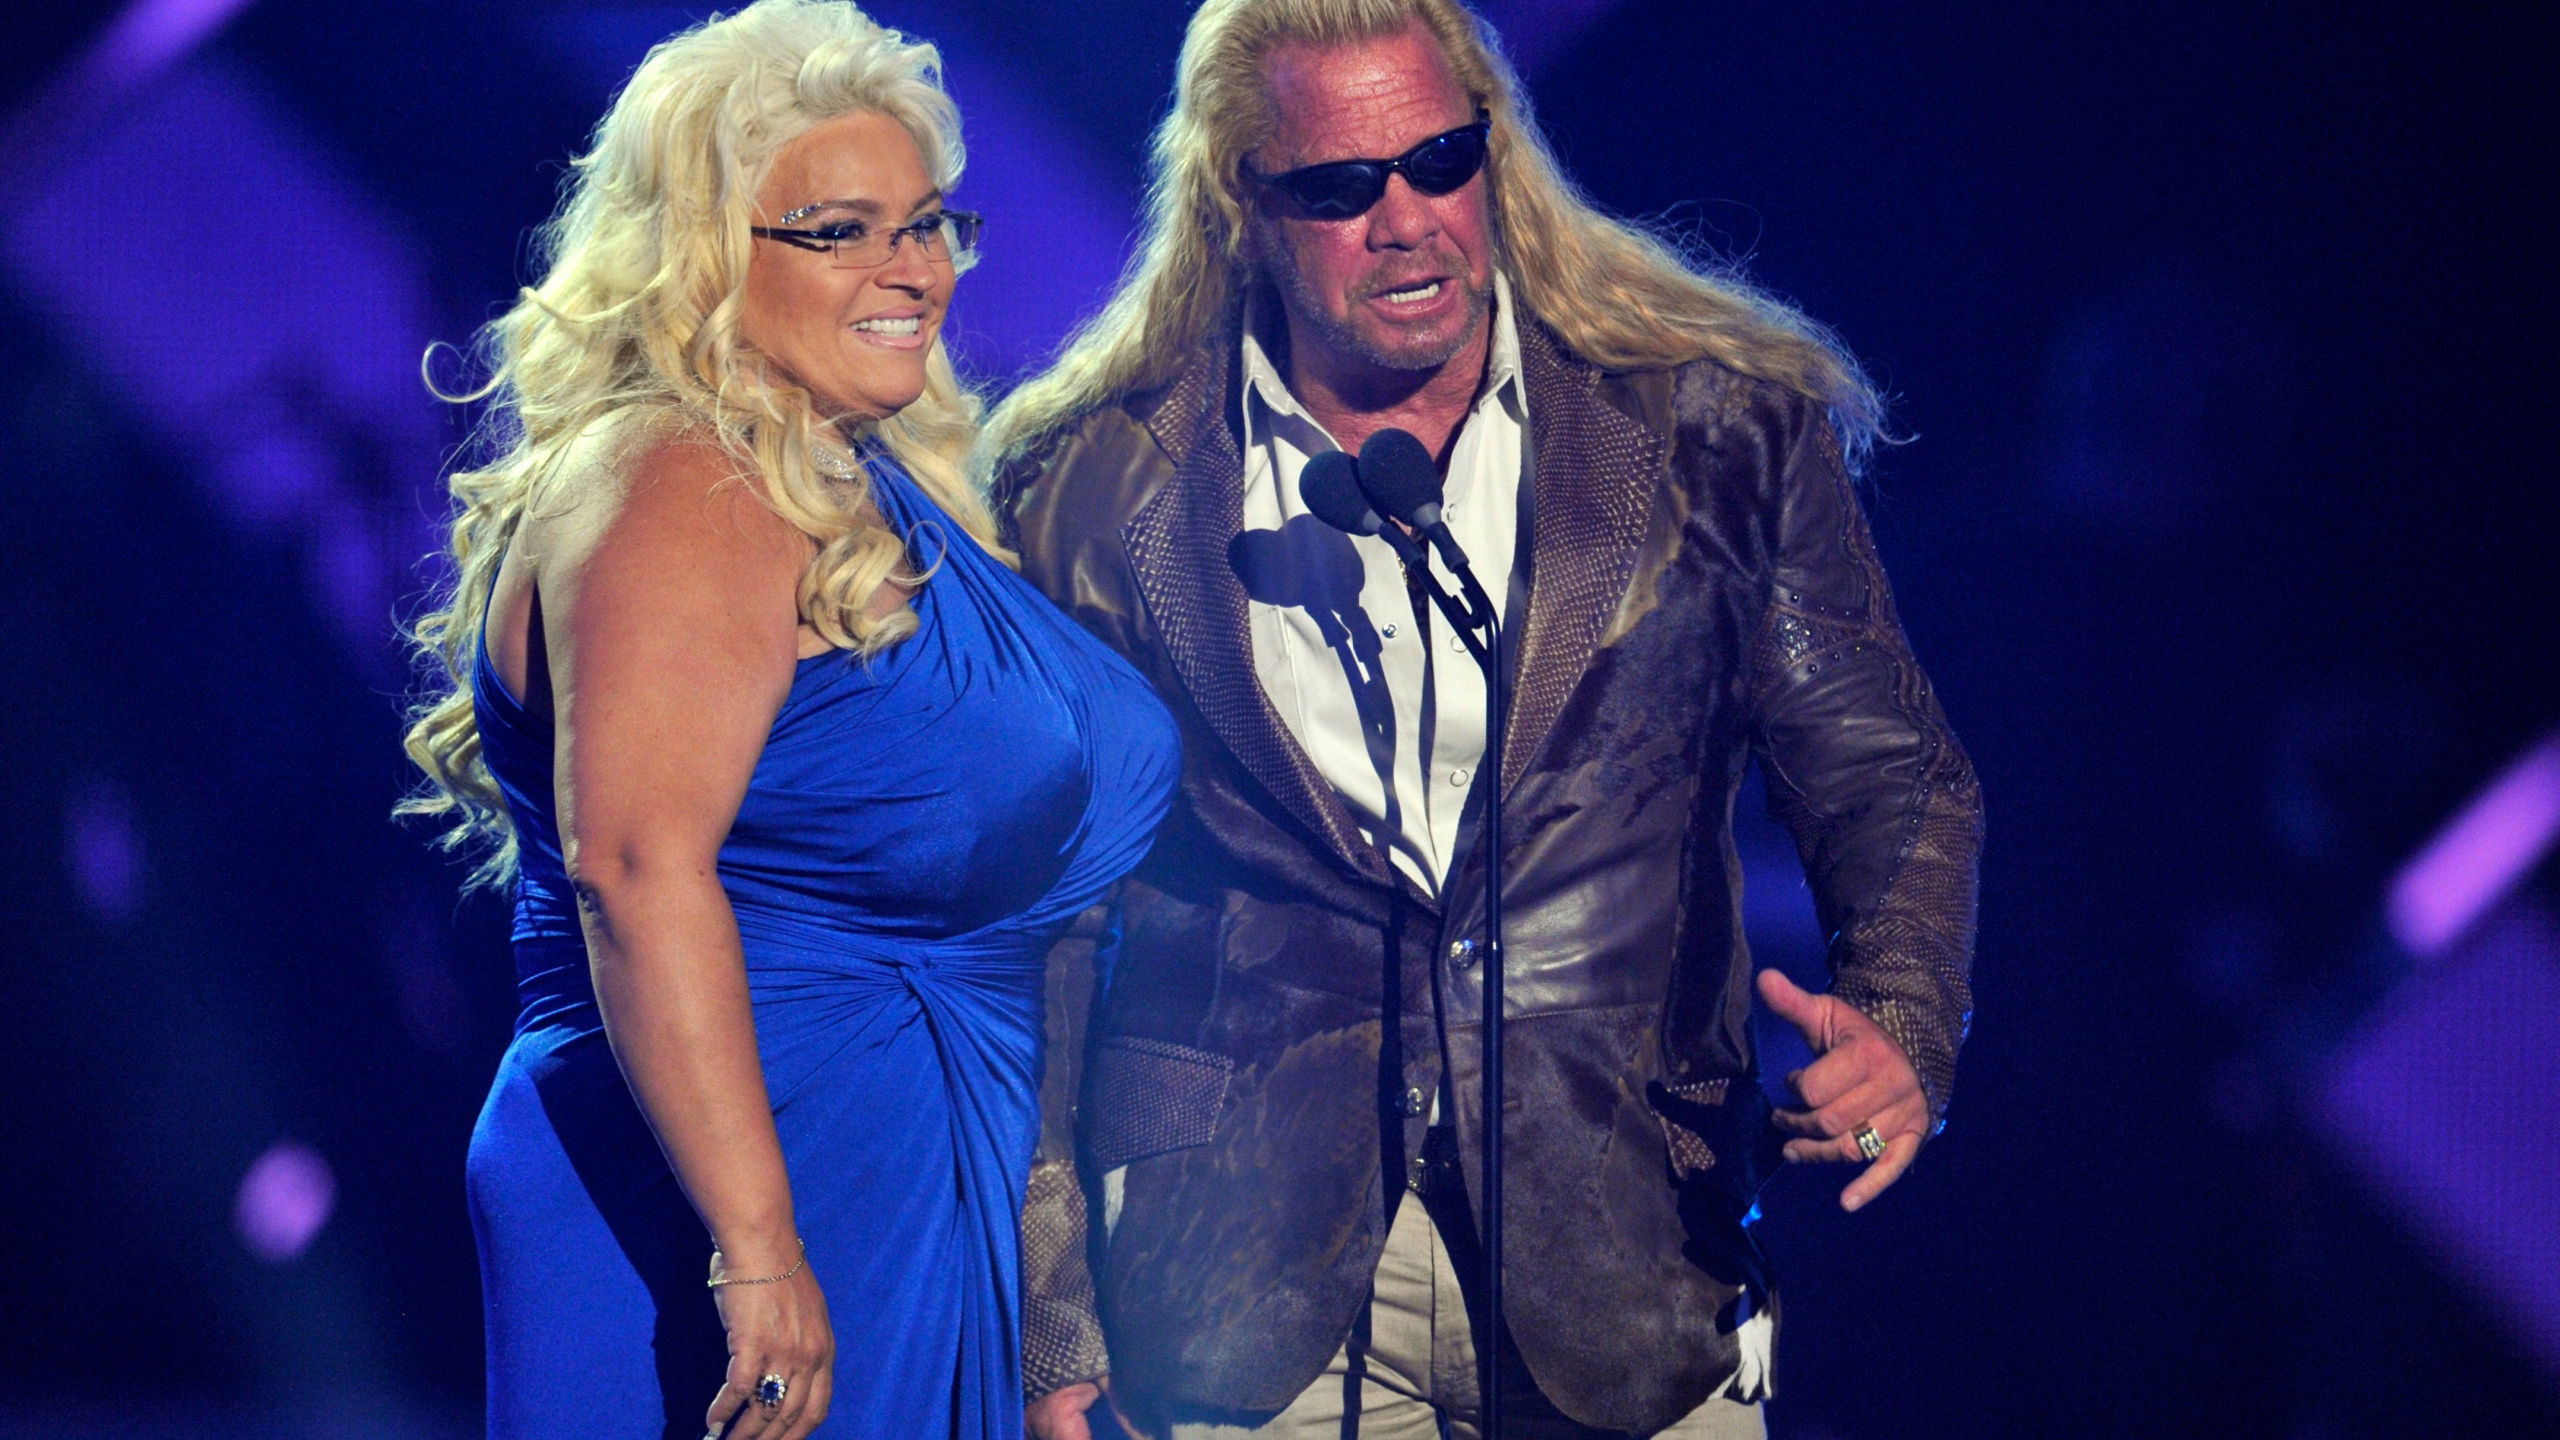 Beth Chapman Wife Of Dog The Bounty Hunter Dies Of Cancer At